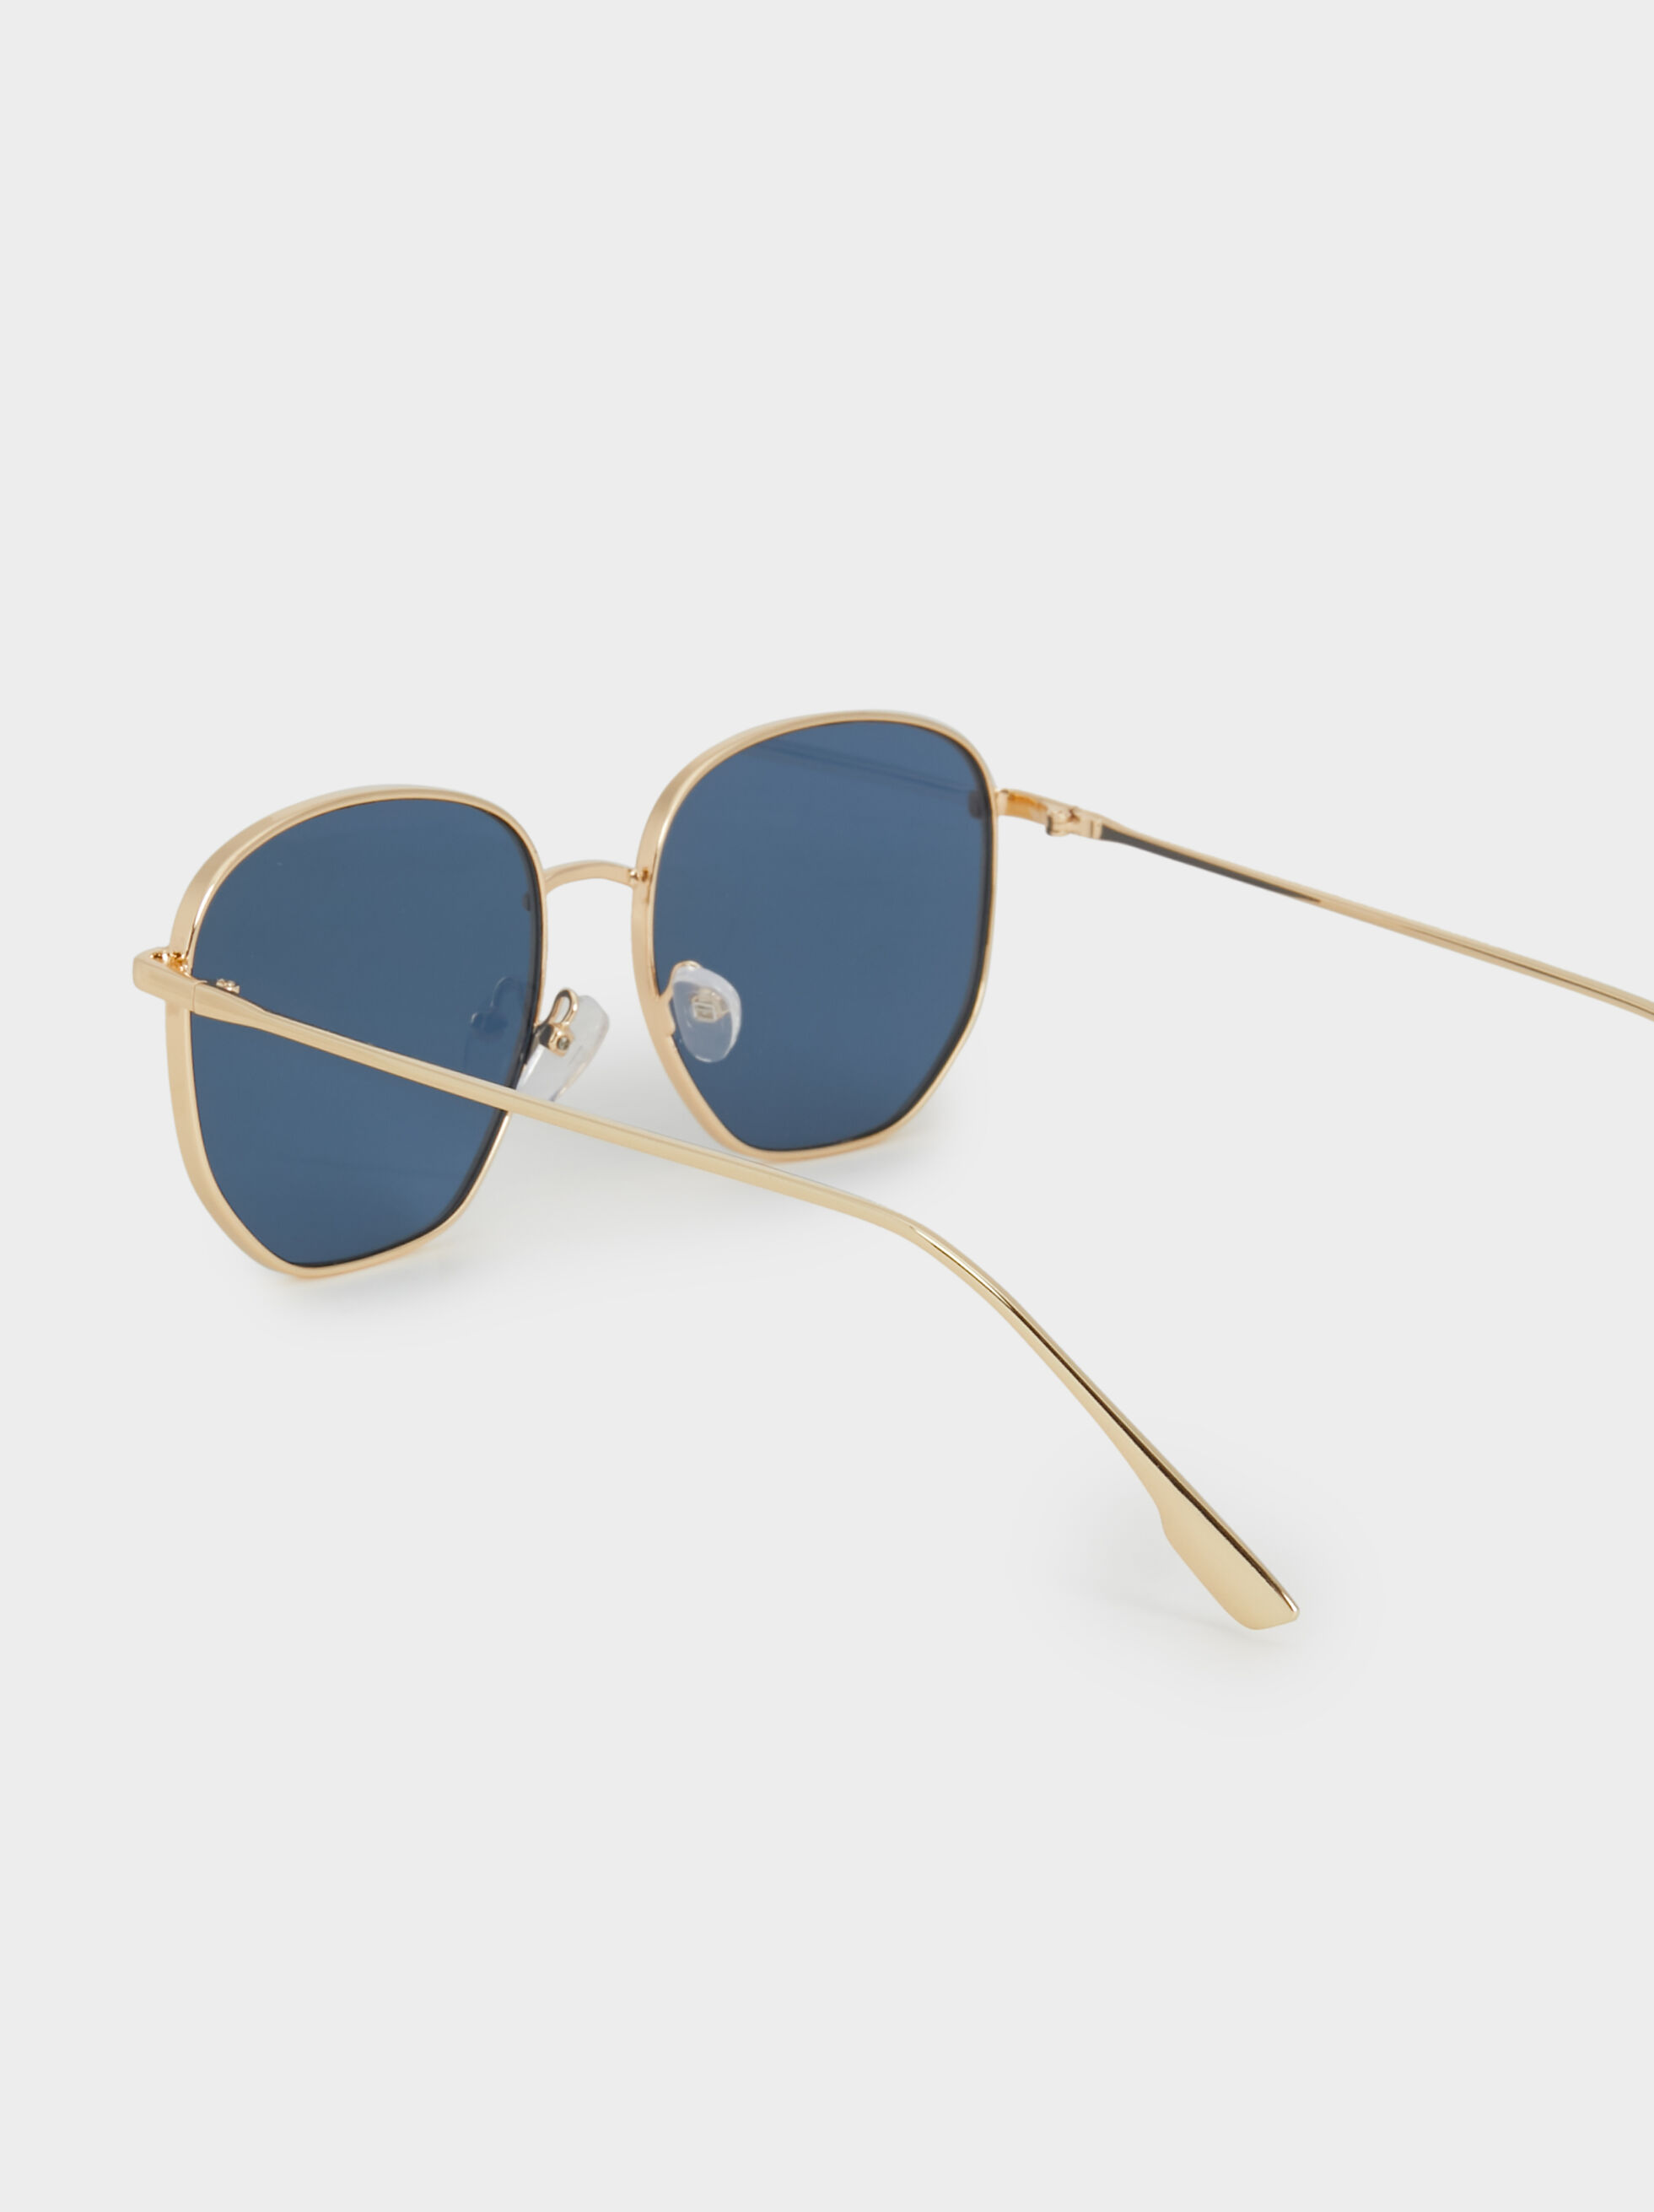 Metal Sunglasses, Golden, hi-res